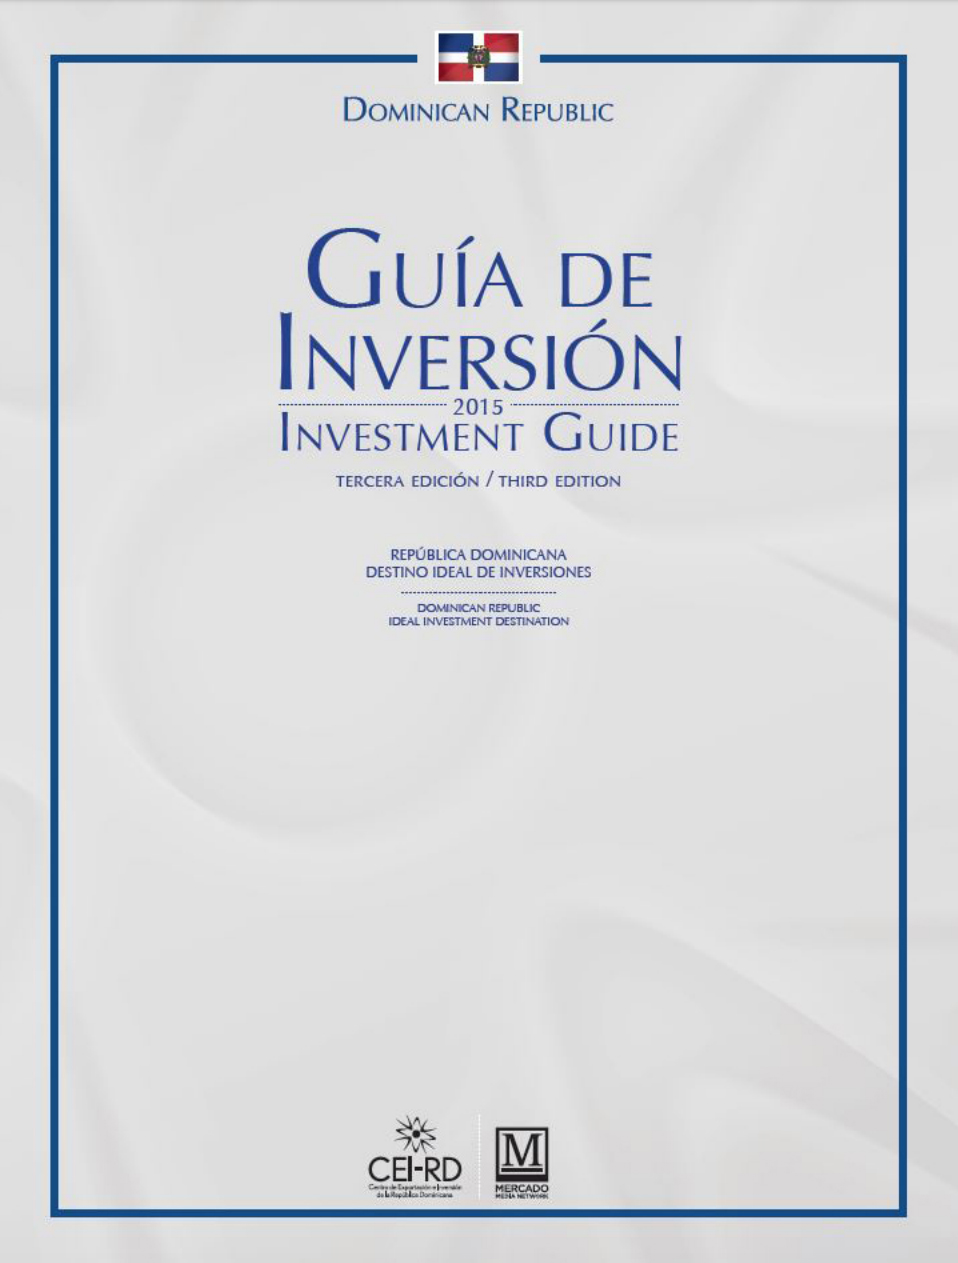 guia de inversion 2015